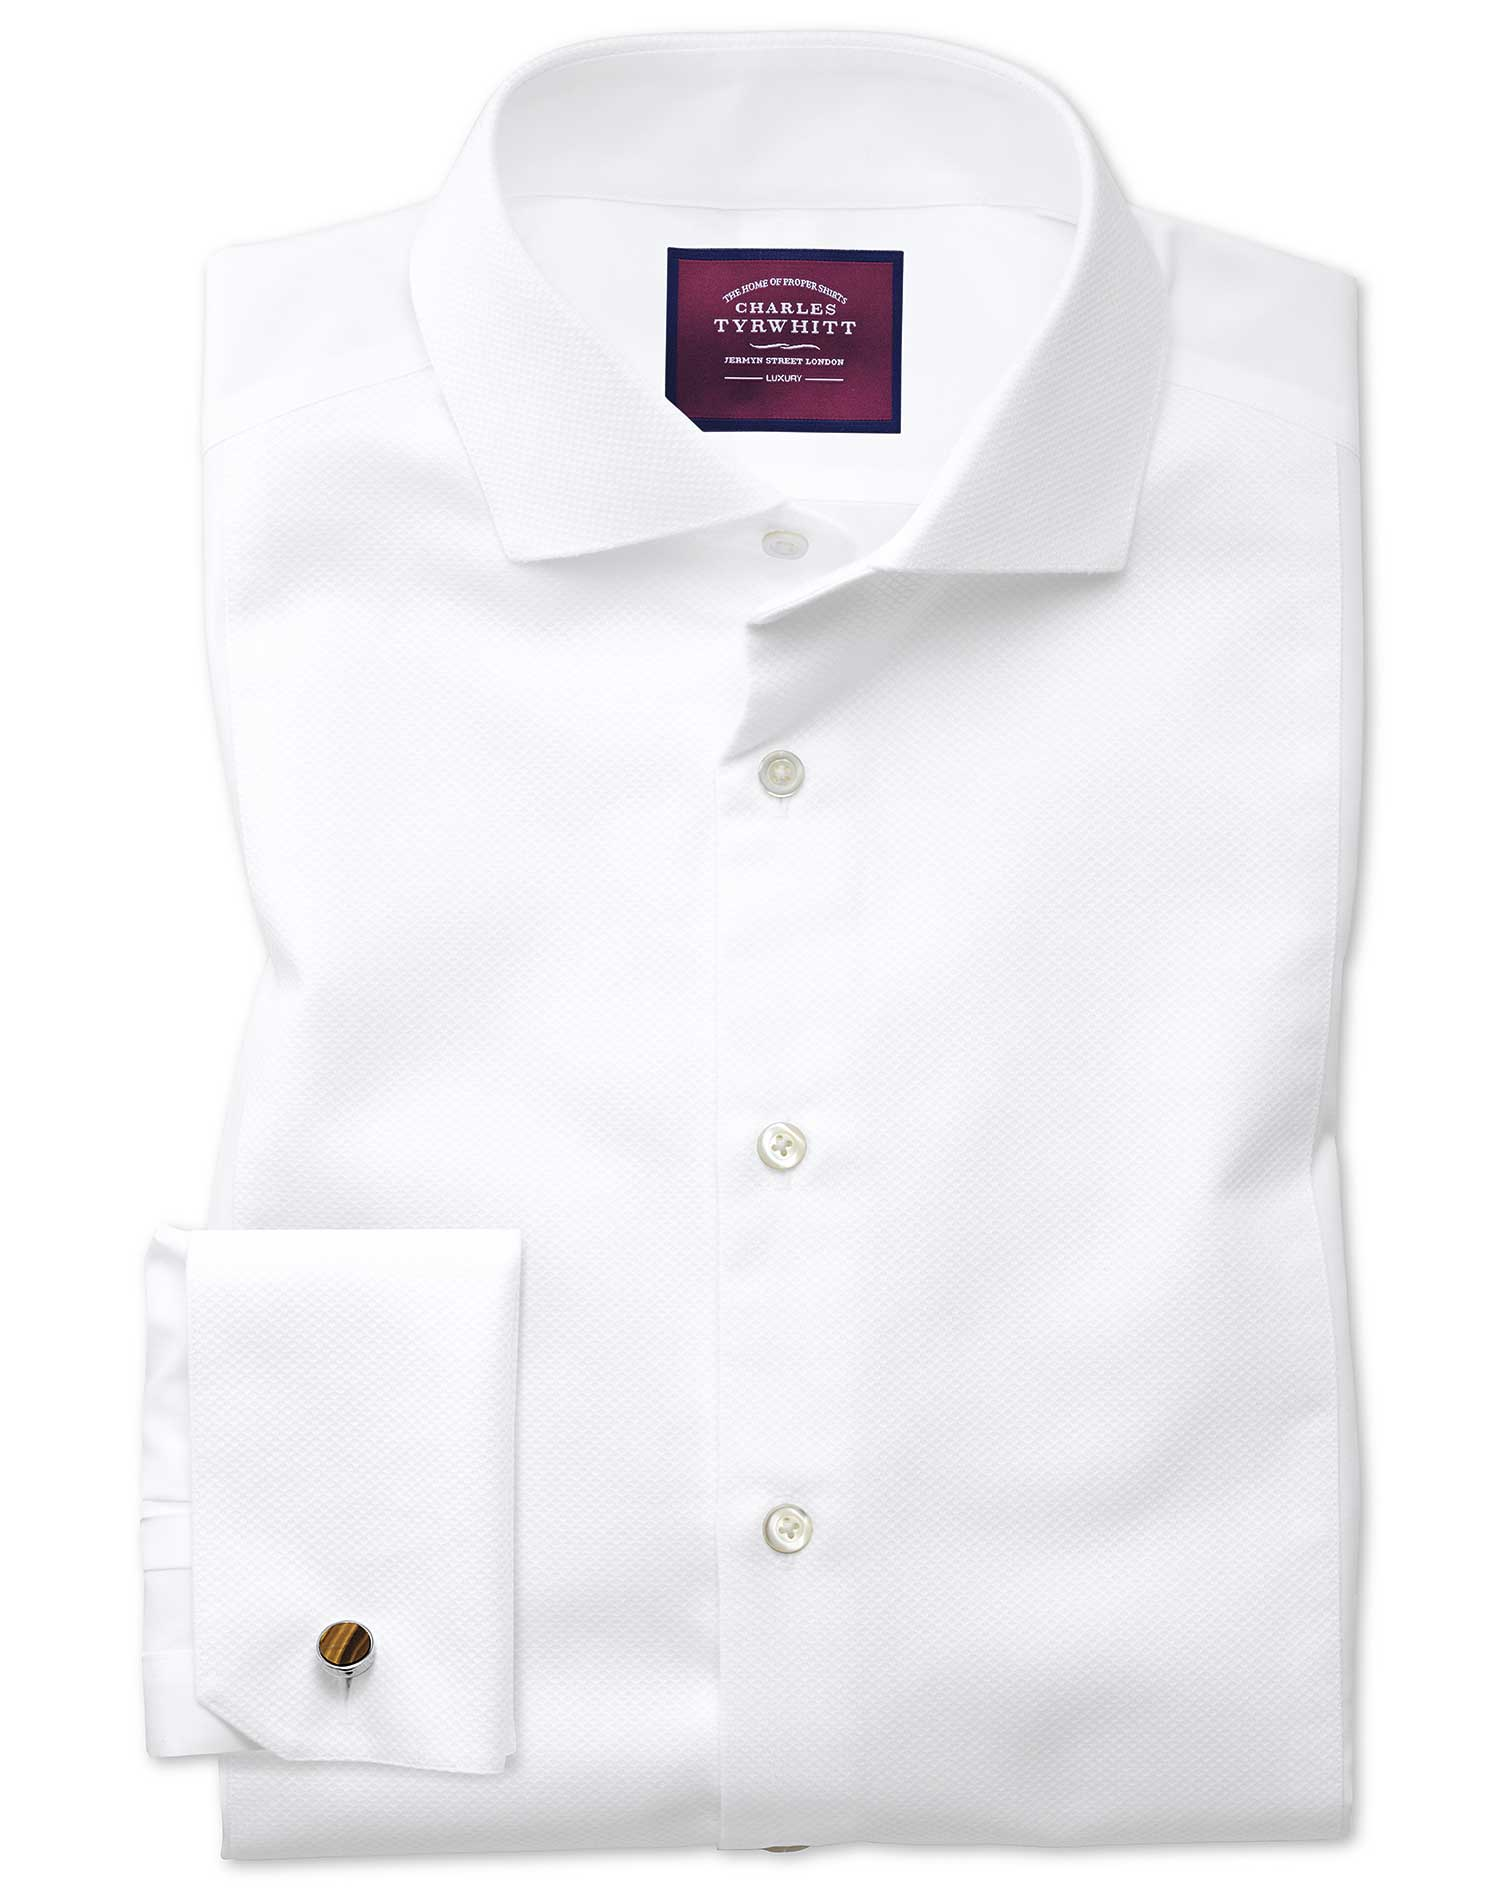 Slim Fit Cutaway Non-Iron Luxury White Cotton Formal Shirt Double Cuff Size 16.5/33 by Charles Tyrwh